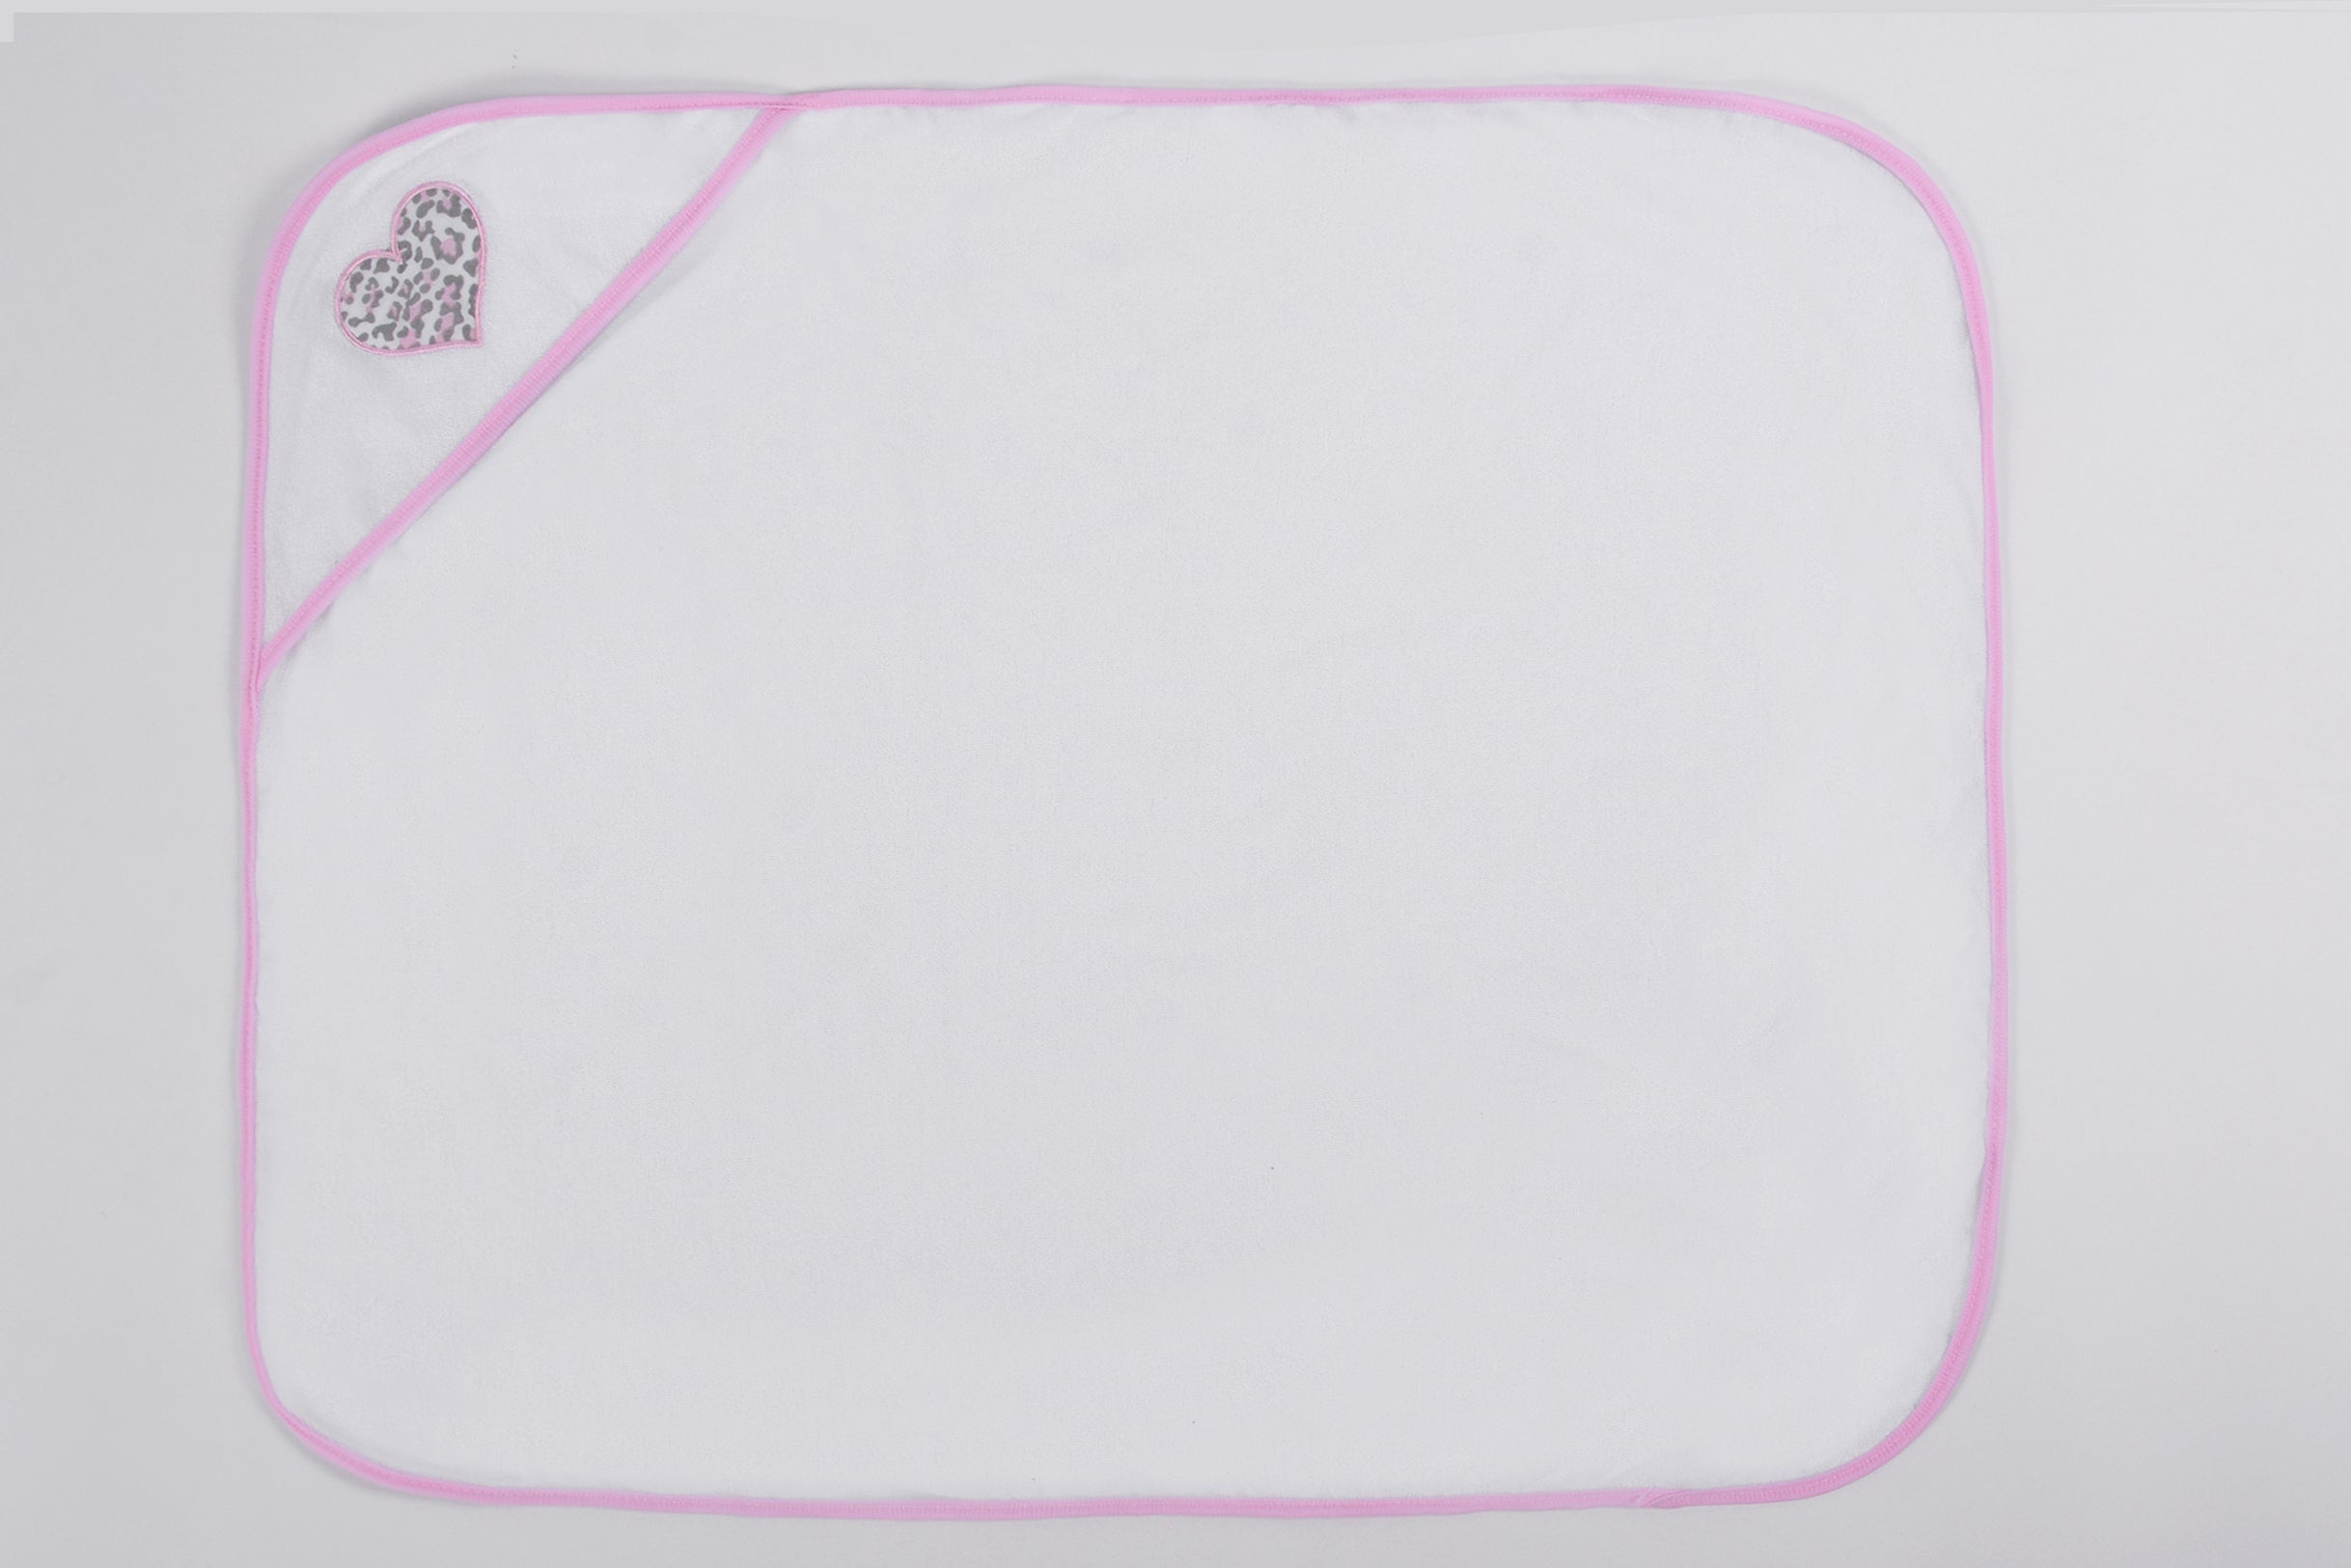 Pack of 2 Hooded Towels - Pink